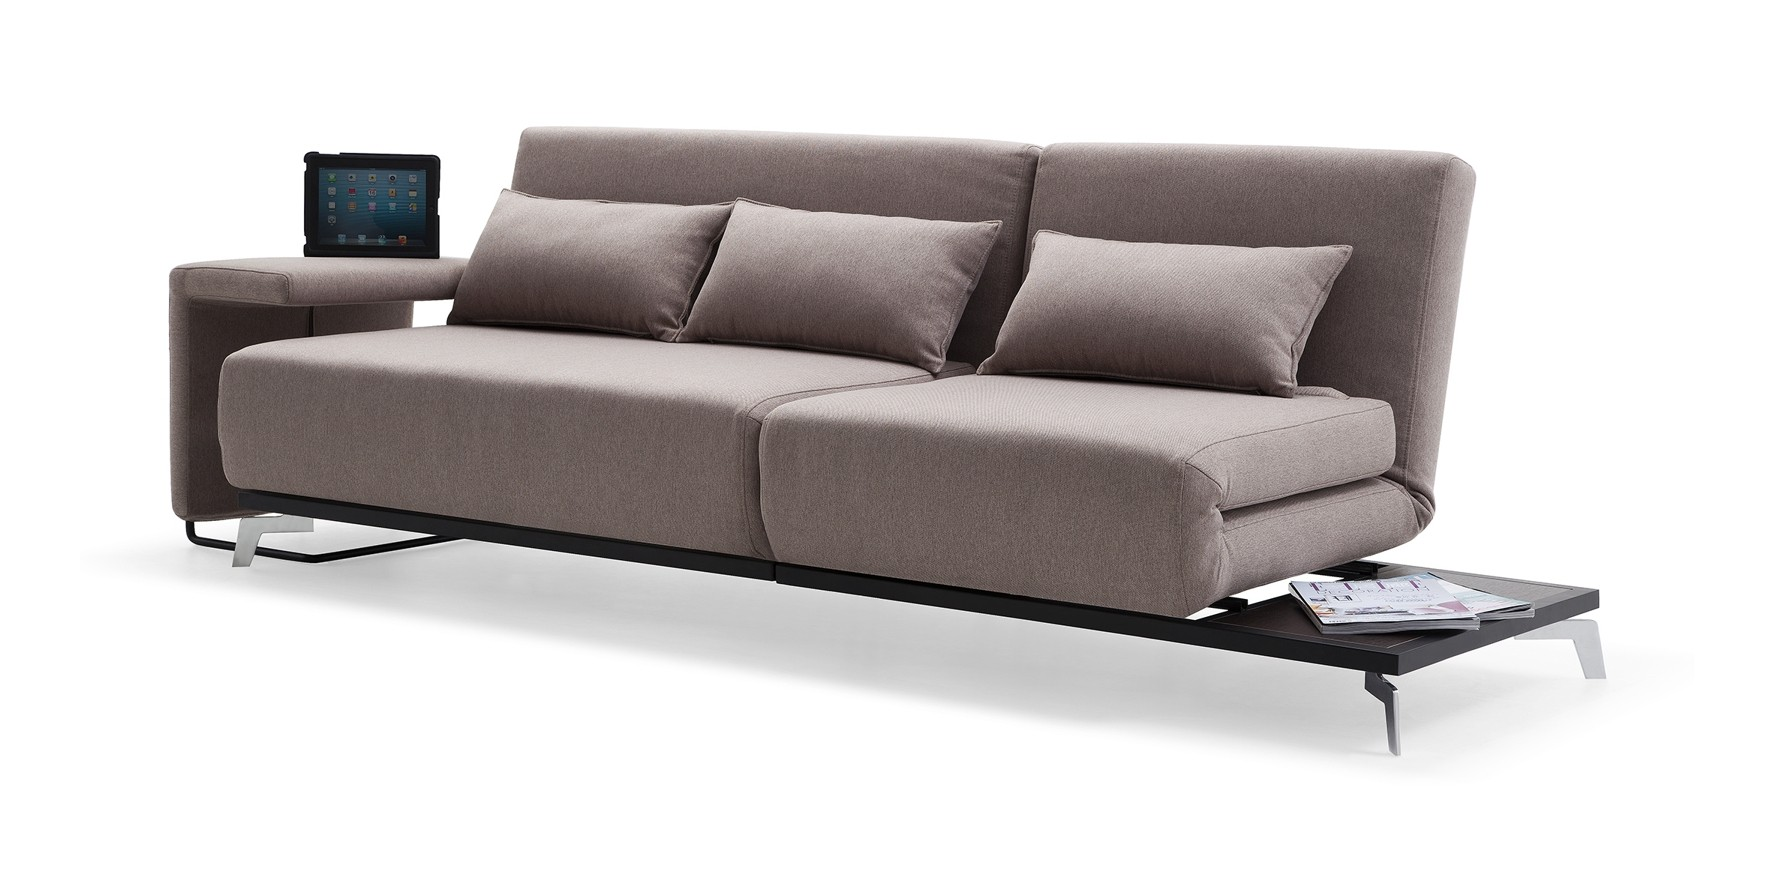 new modern sofa bed 28 sofas and couches ideas with modern sofa bed CBDADLU